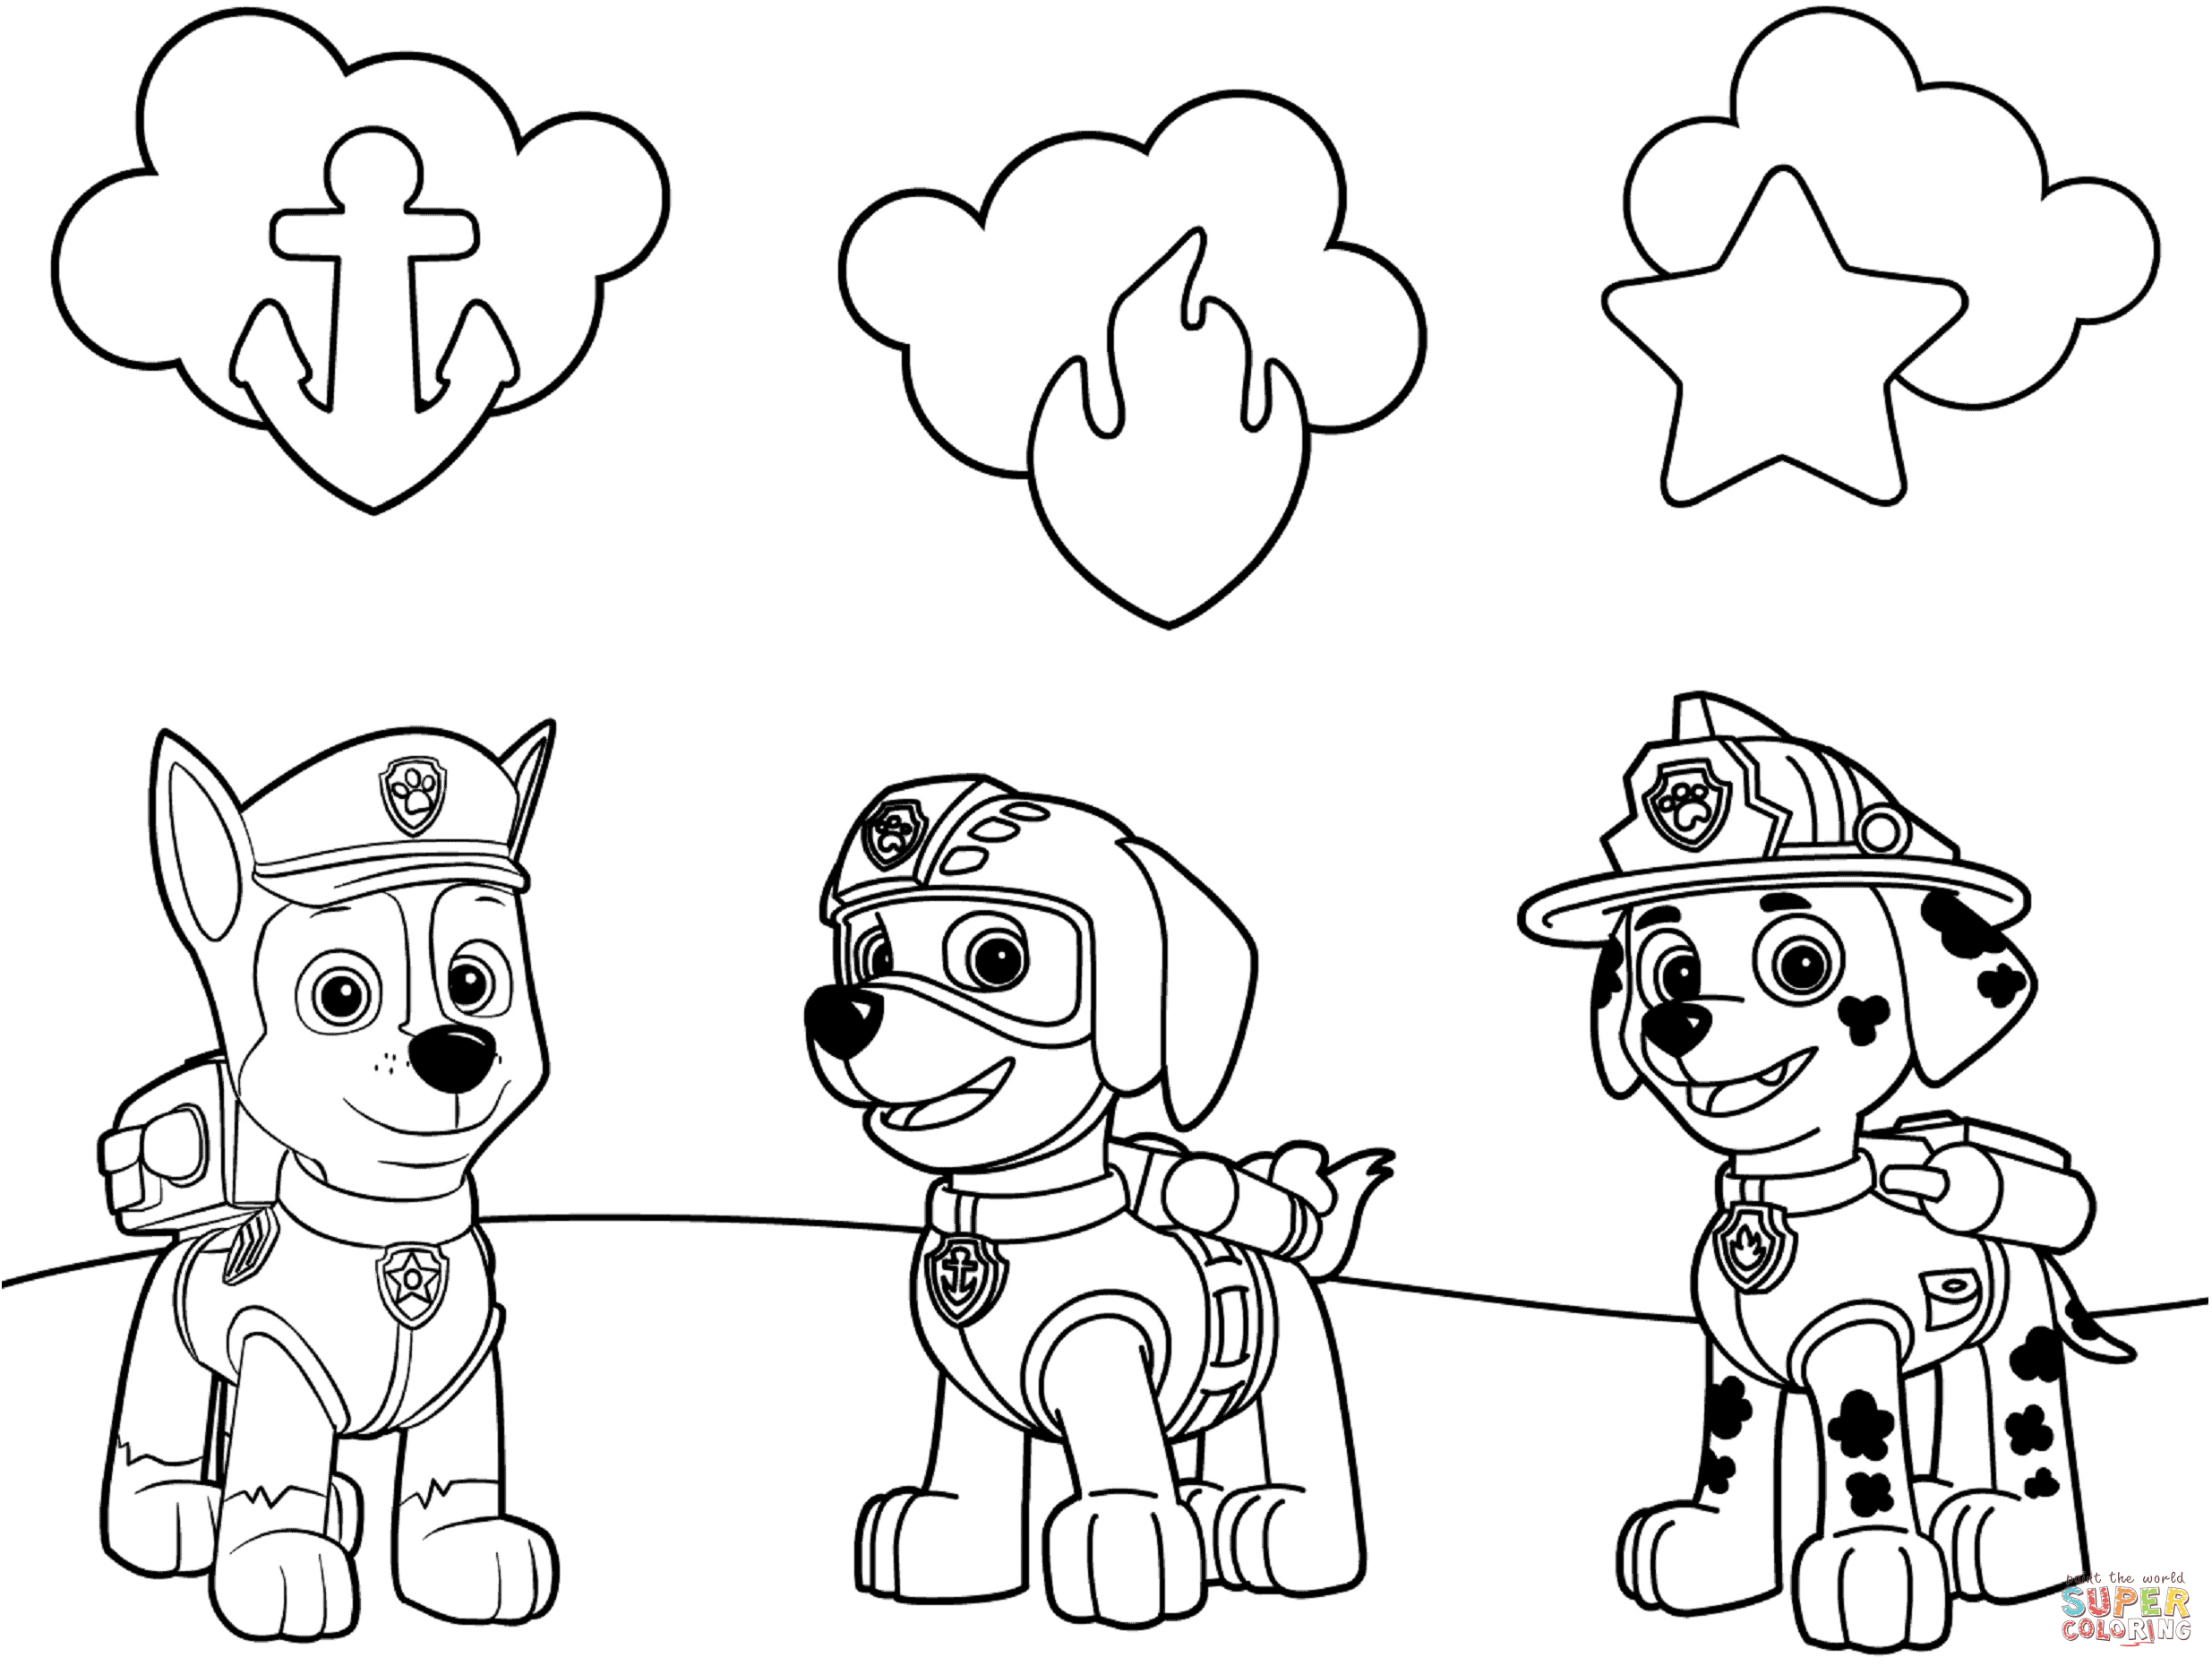 Paw patrol coloring pages happy birthday - Paw Patrol Badges Coloring Page Free Printable Coloring Pages